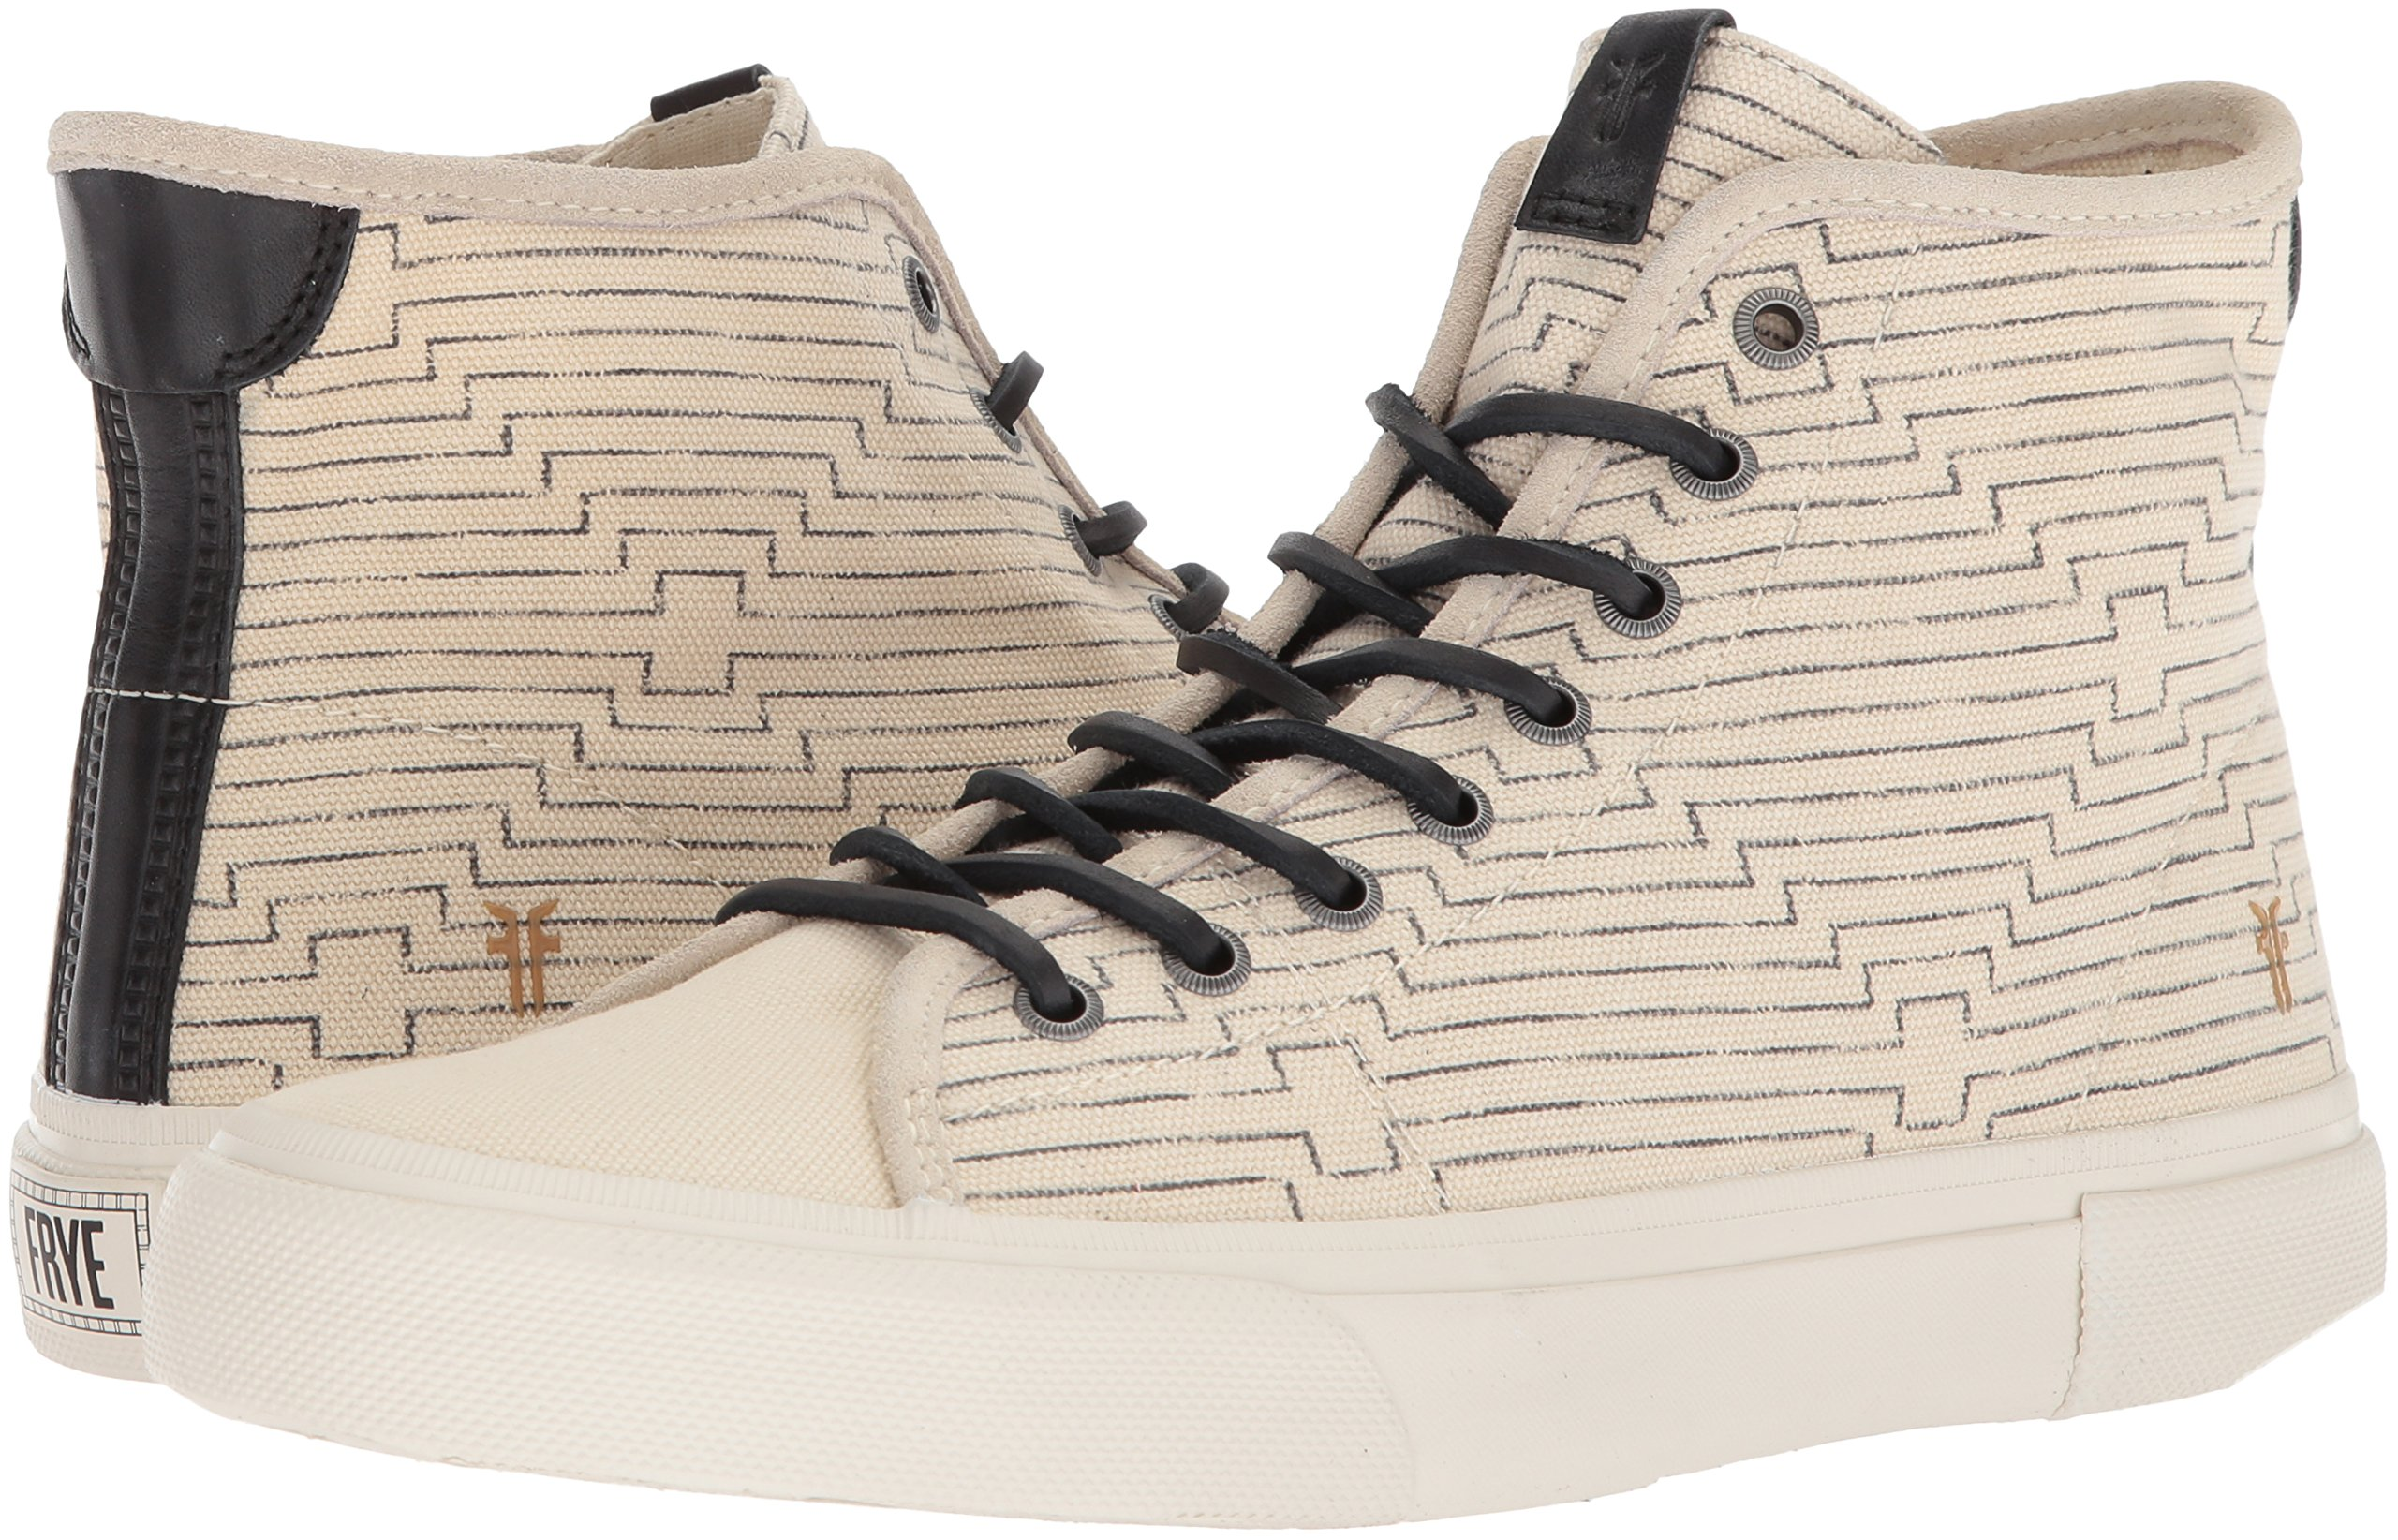 FRYE Men's Ludlow High Canvas Print Sneaker, Off White, 8.5 Medium US by FRYE (Image #5)